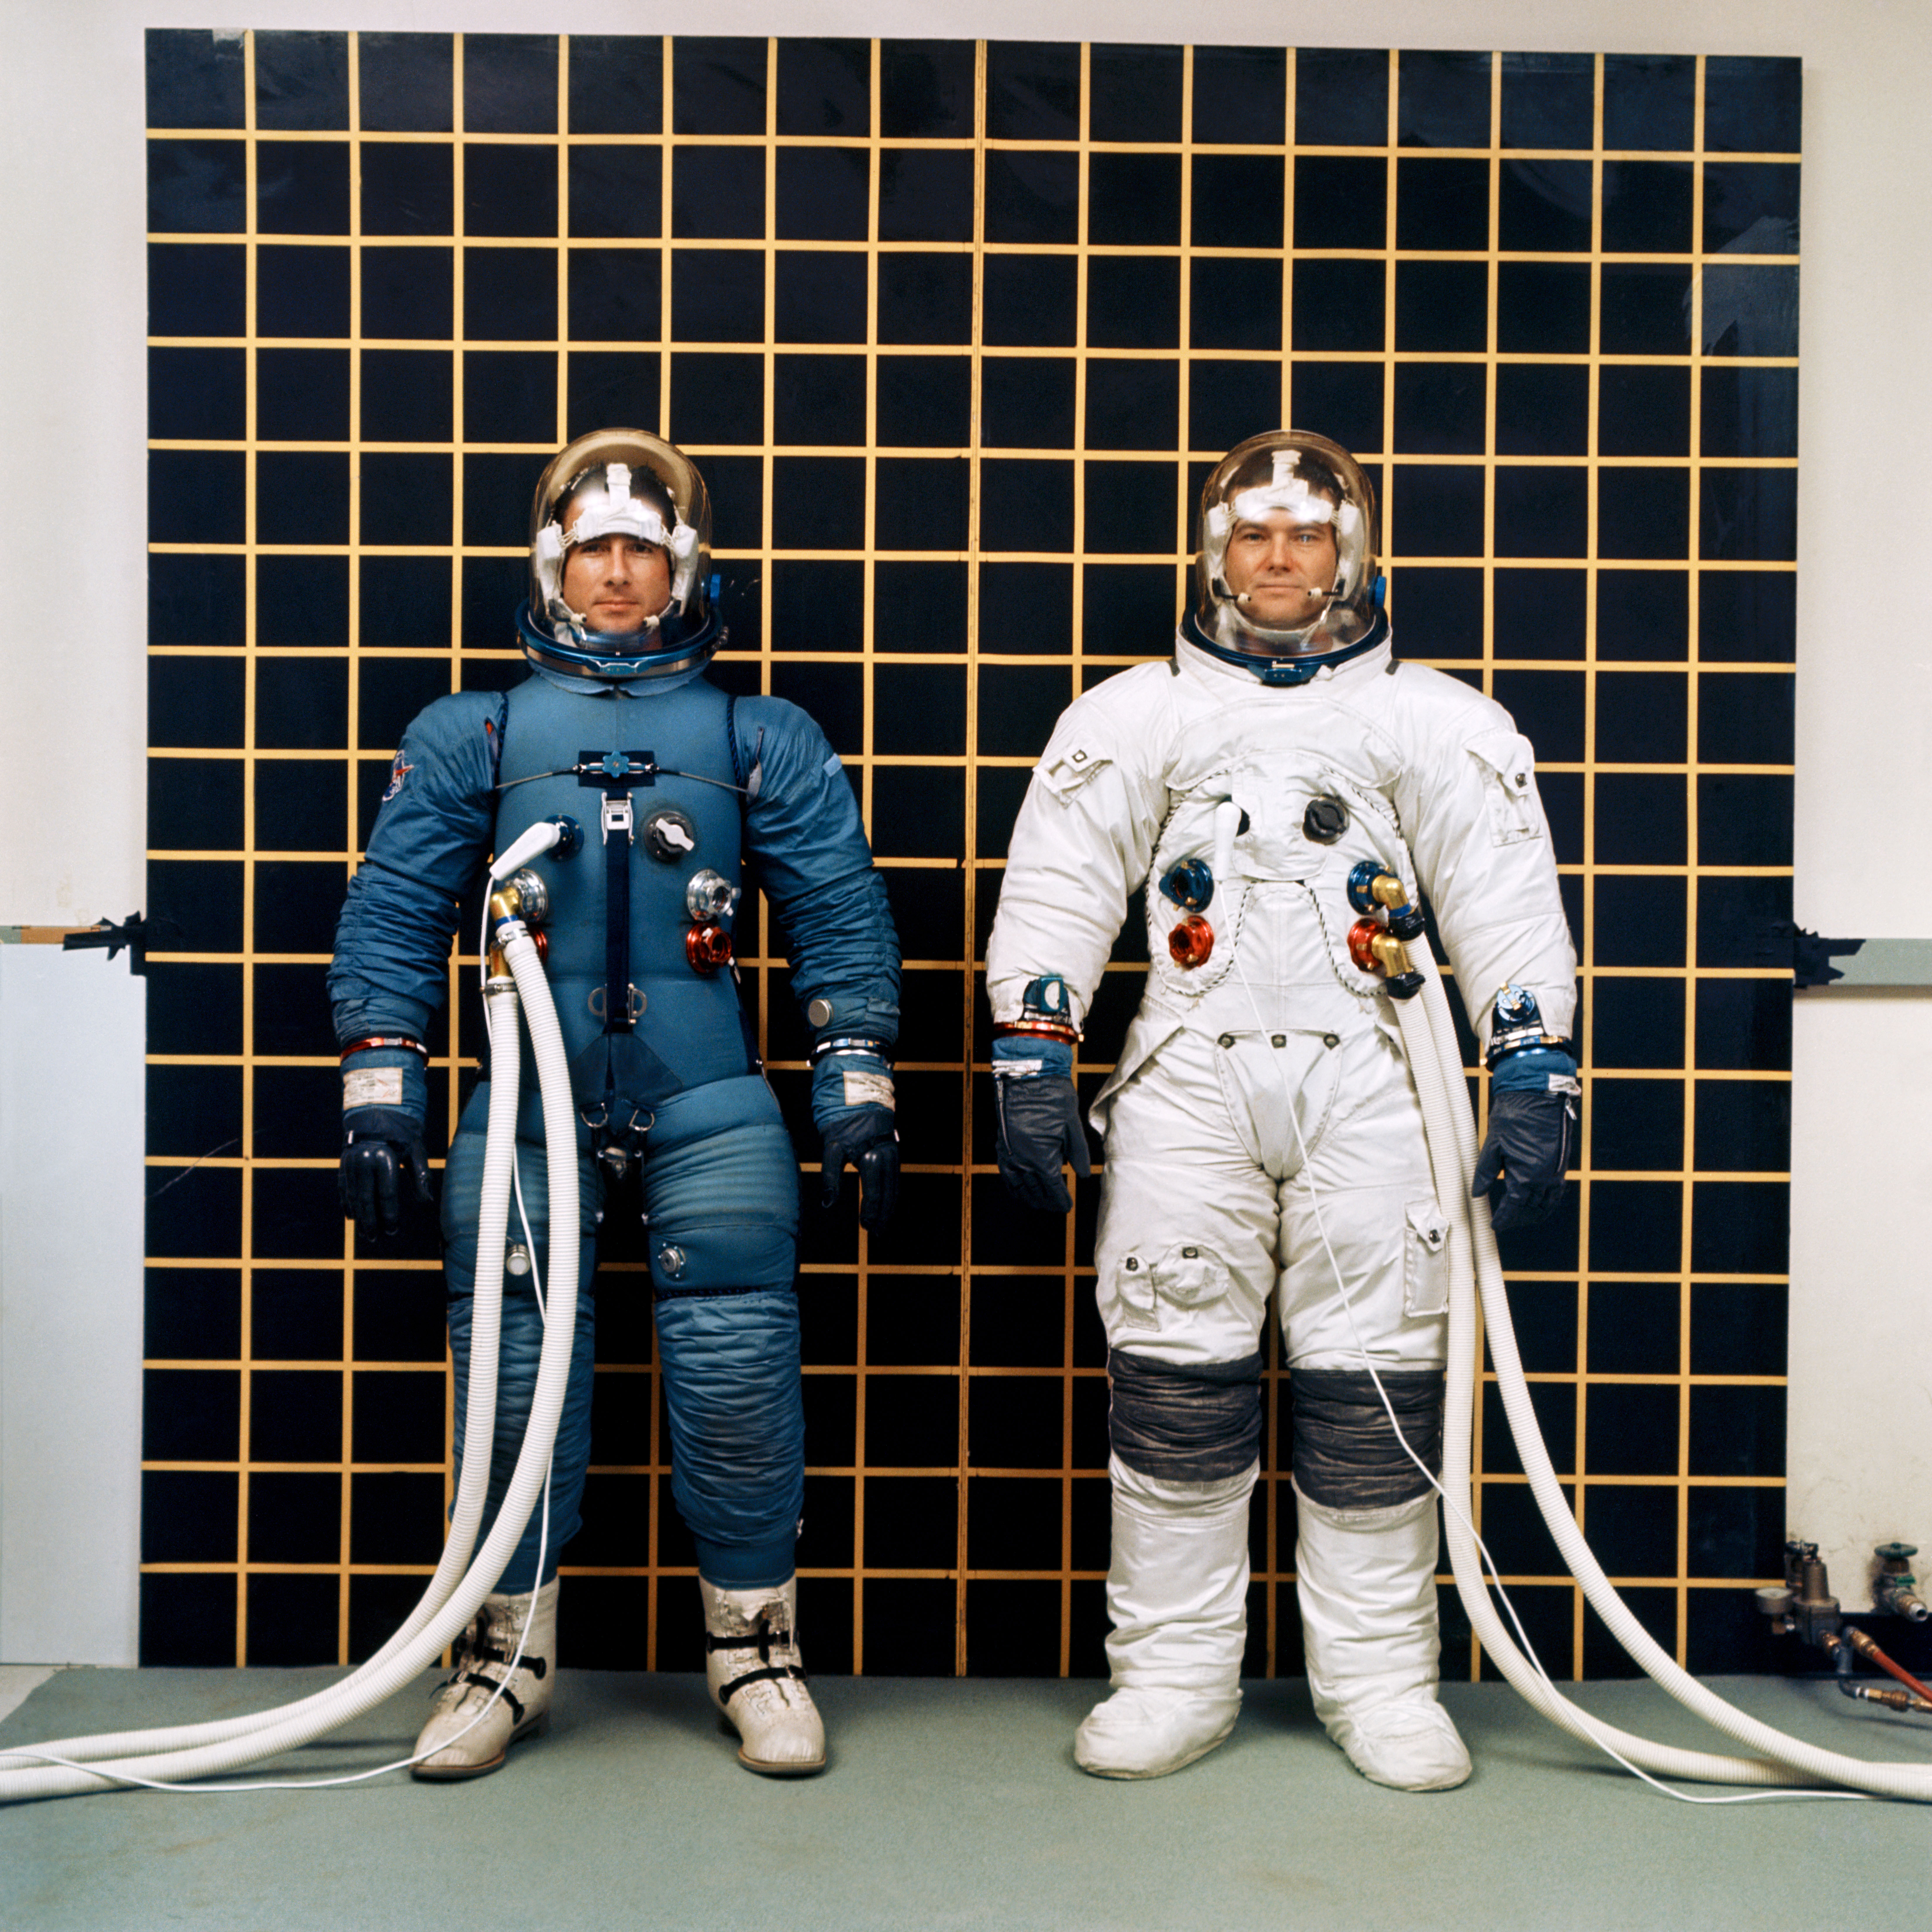 apollo_iv_and_ev_suits_irwin_and_bull_s68-18701.jpg